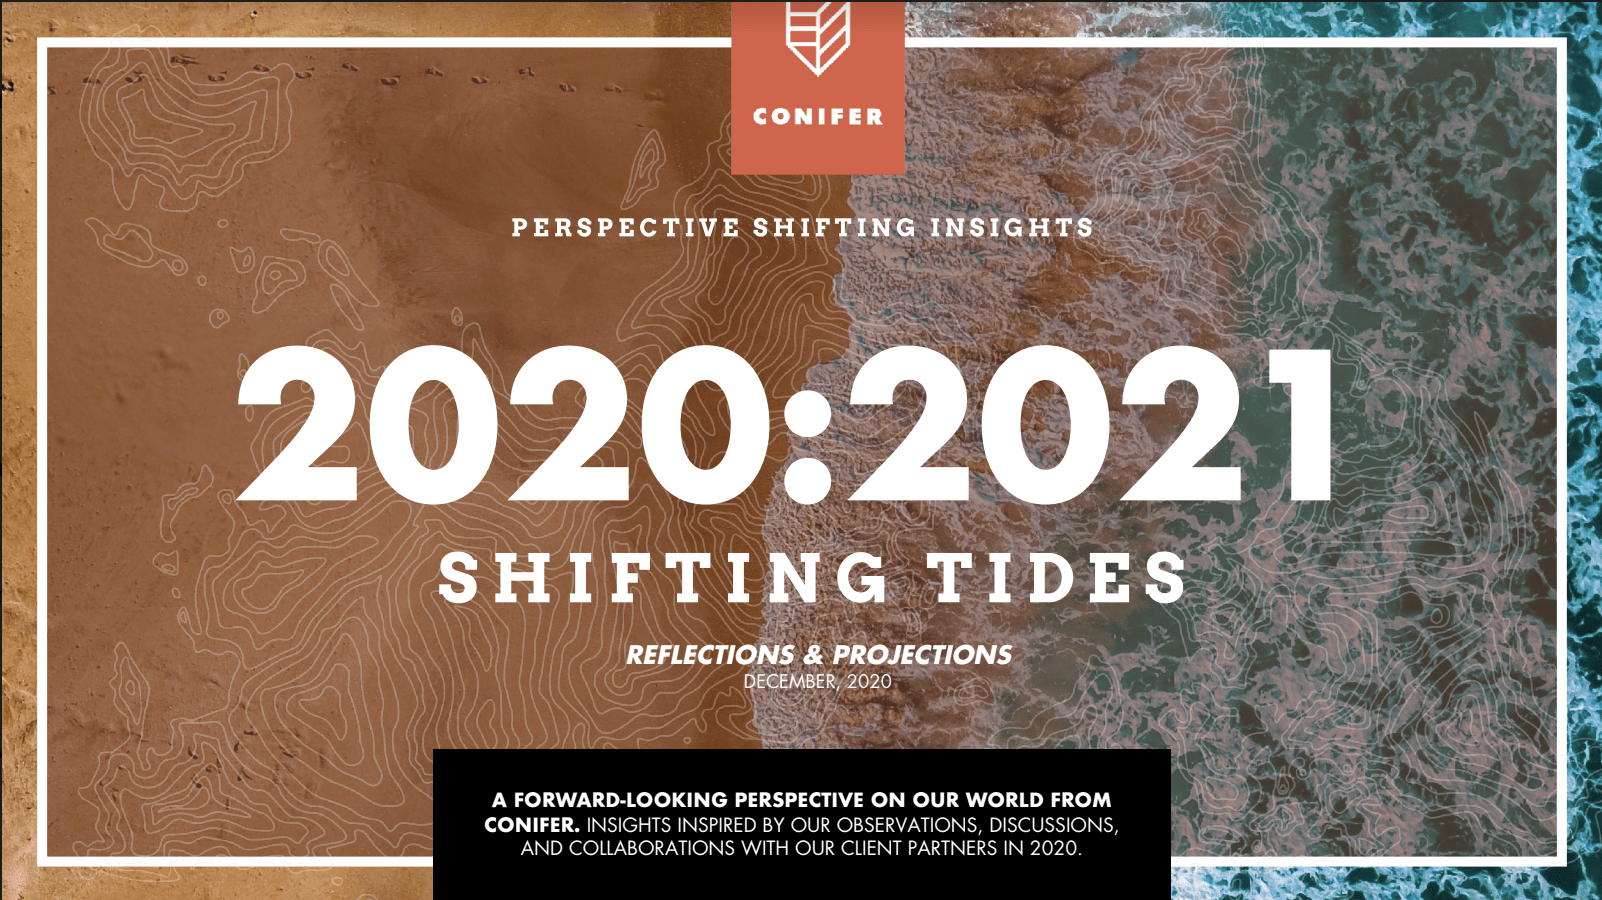 2020 2021 shifting tides projections